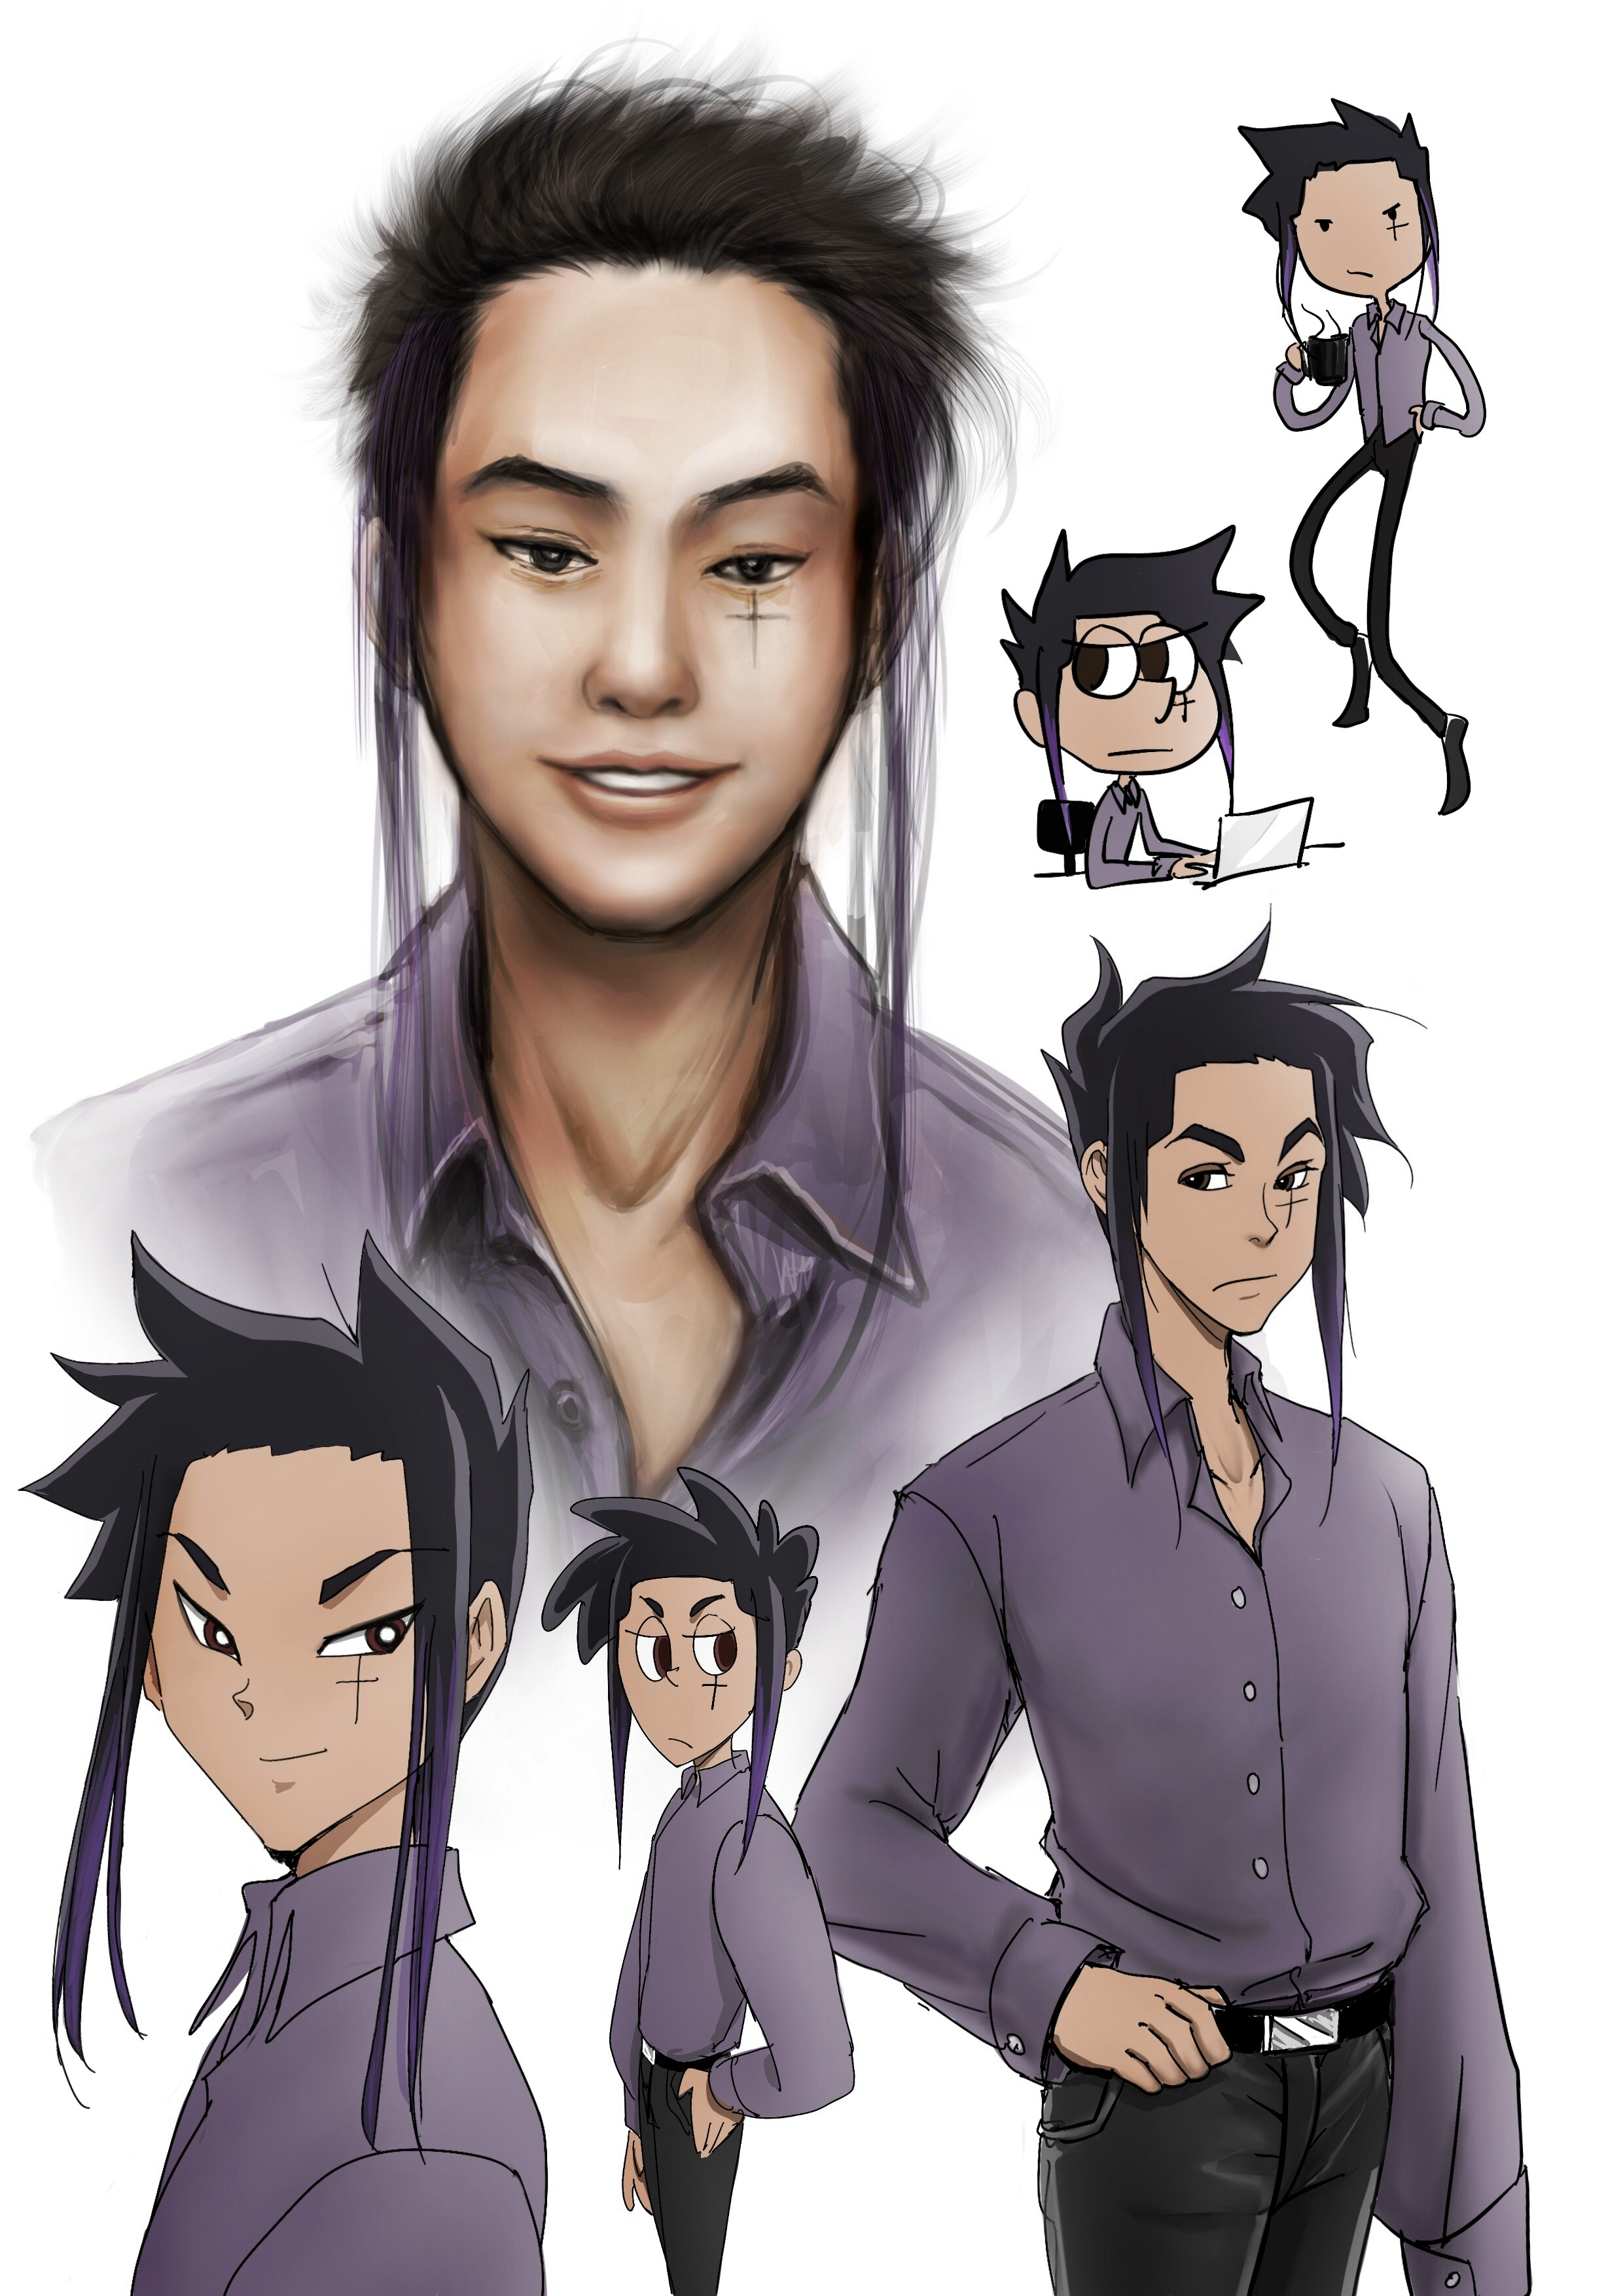 this is ryuzaki - He is Ria's second husband and father to Hari and Kacu. He plays Boreas in the Myth of Eros and Psyche and played Young Siward in Macbeth.